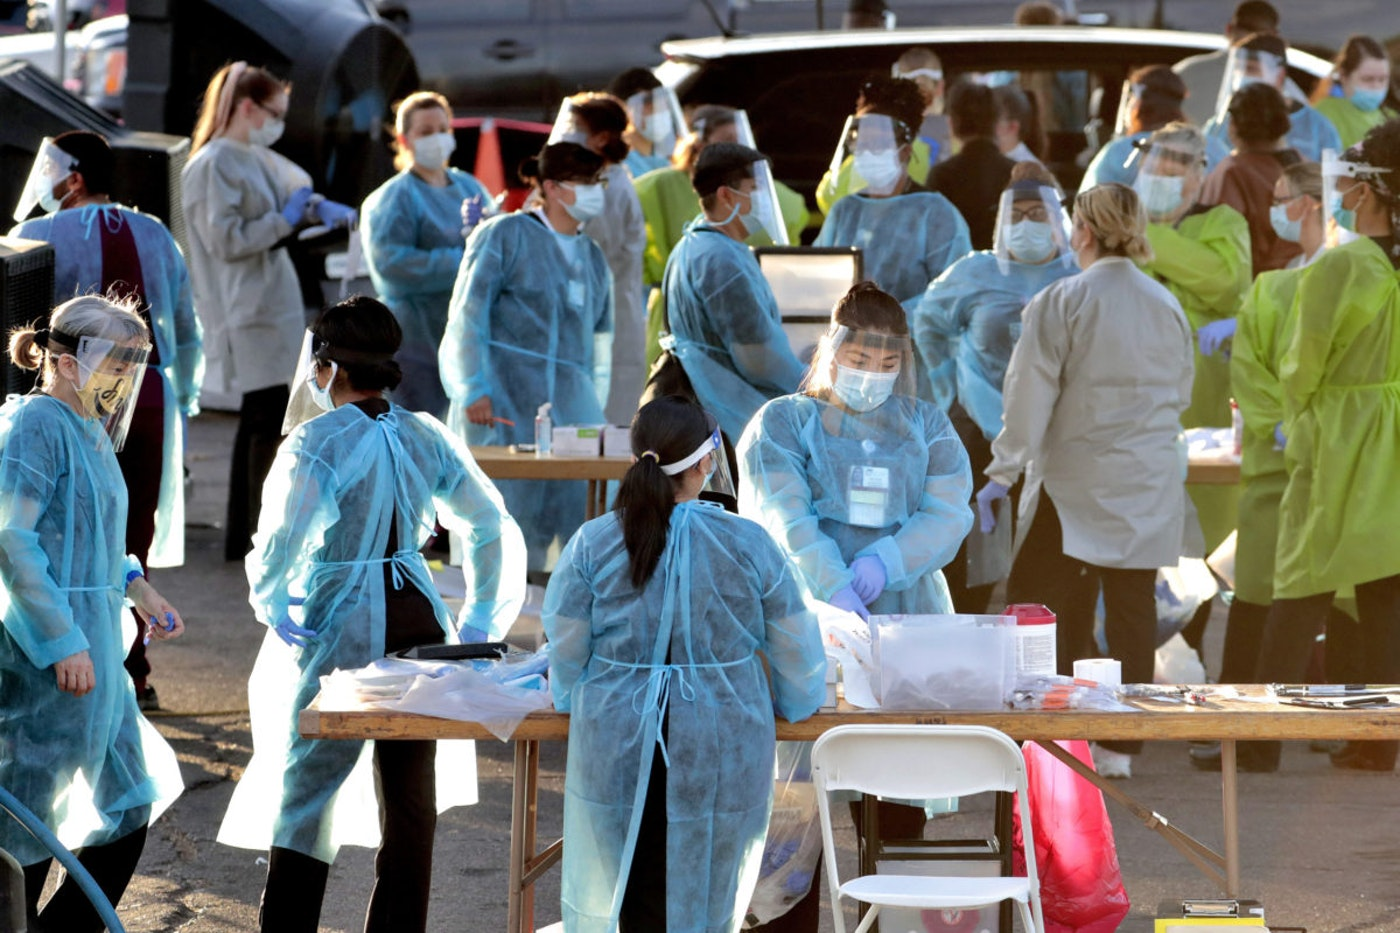 In this photo taken Saturday, June 27, 2020, medical personnel prepare to test hundreds of people lined up in vehicles in Phoenix's western neighborhood of Maryvale in Phoenix for free COVID-19 tests organized by Equality Health Foundation, which focuses on care in underserved communities. (AP Photo/Matt York)